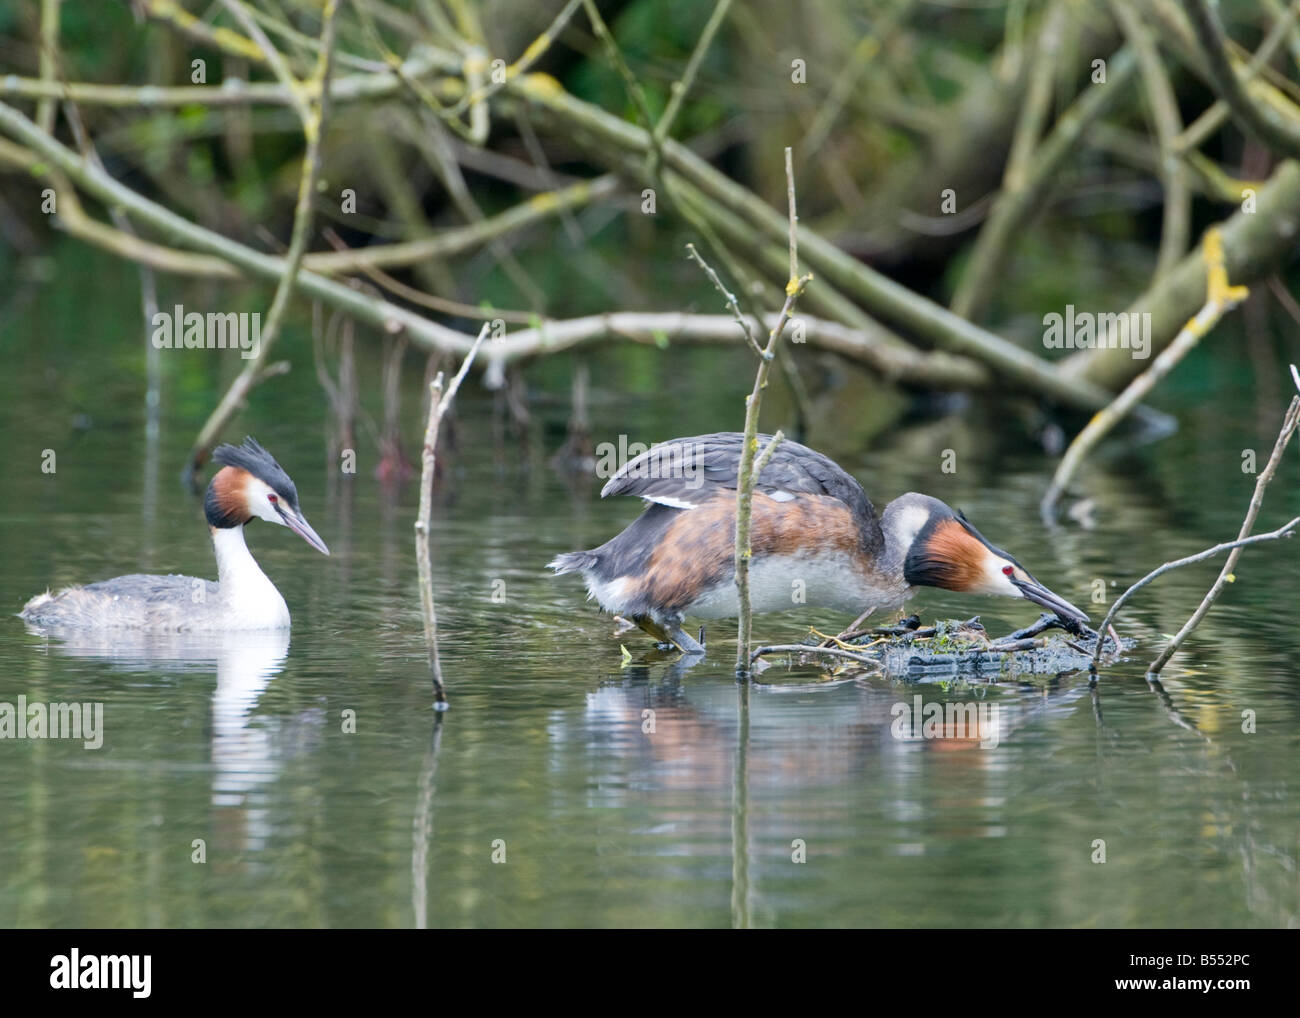 Great Crested Grebes (Podiceps cristatus) preparing to mate in spring time in an English lake - Stock Image